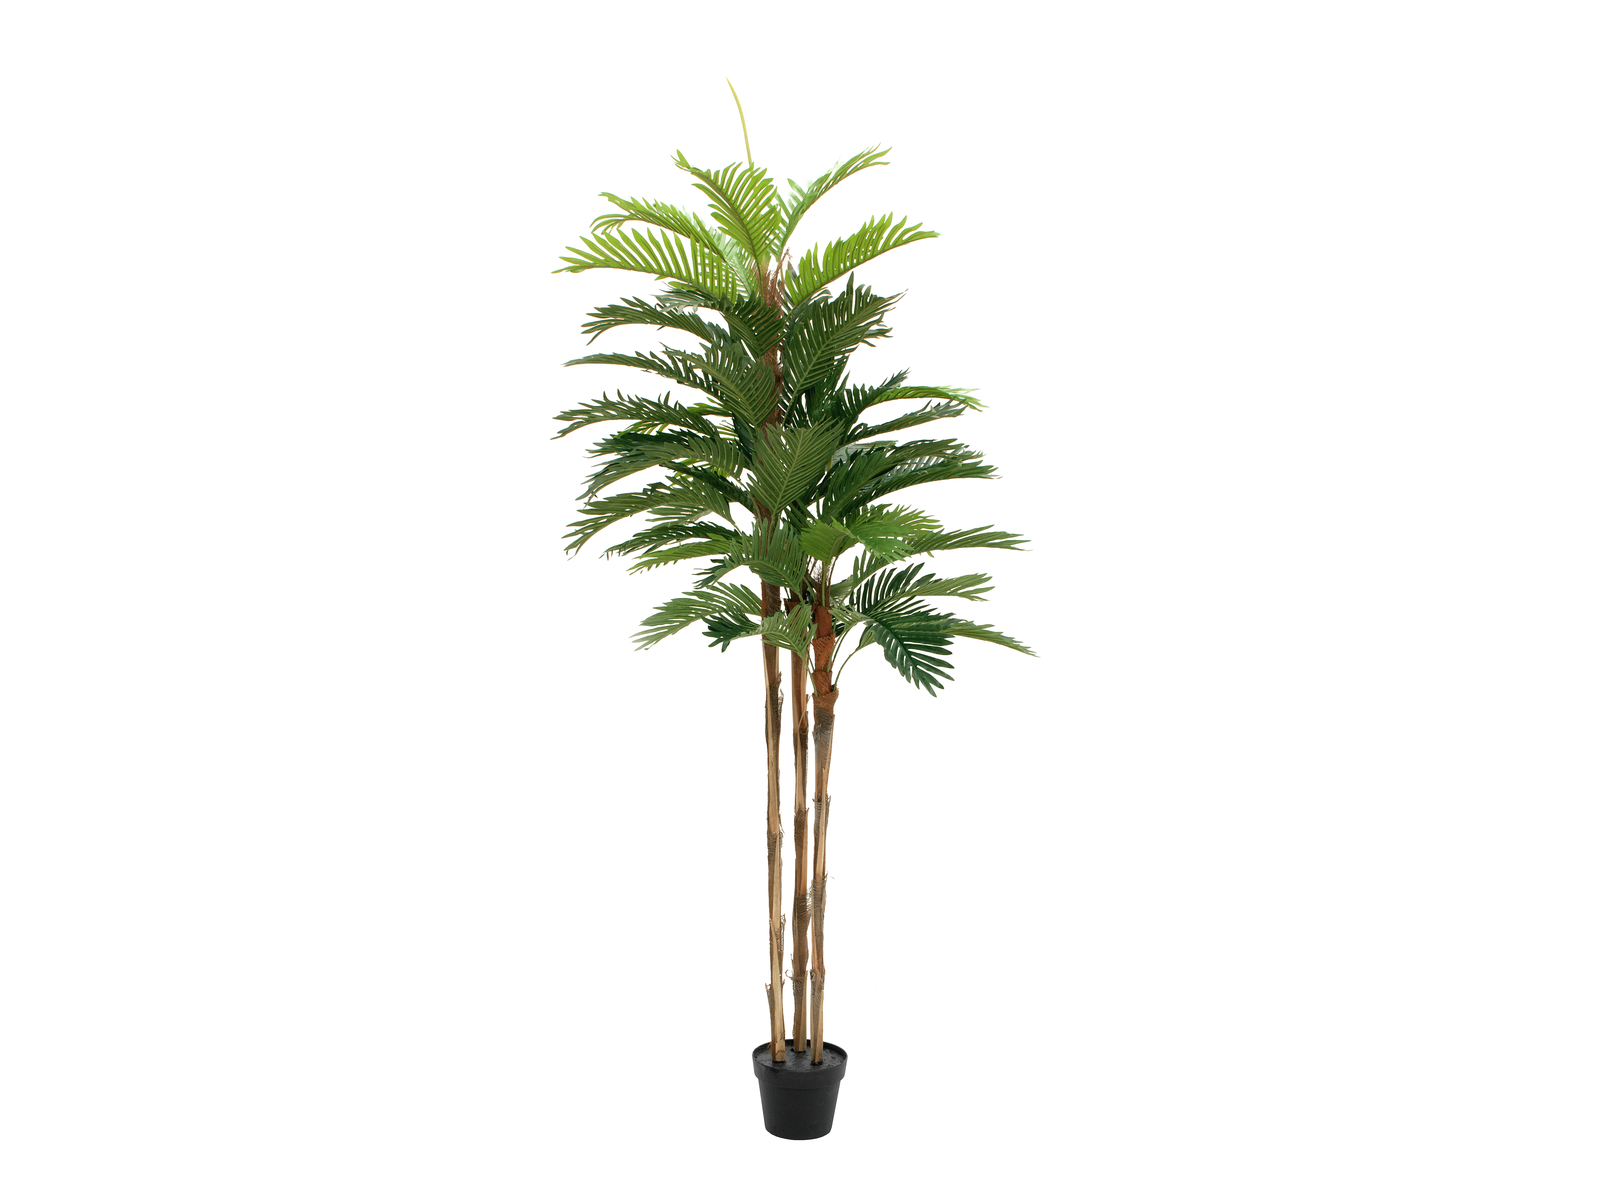 EUROPALMS Kentia di palme, piante artificiali, 180cm